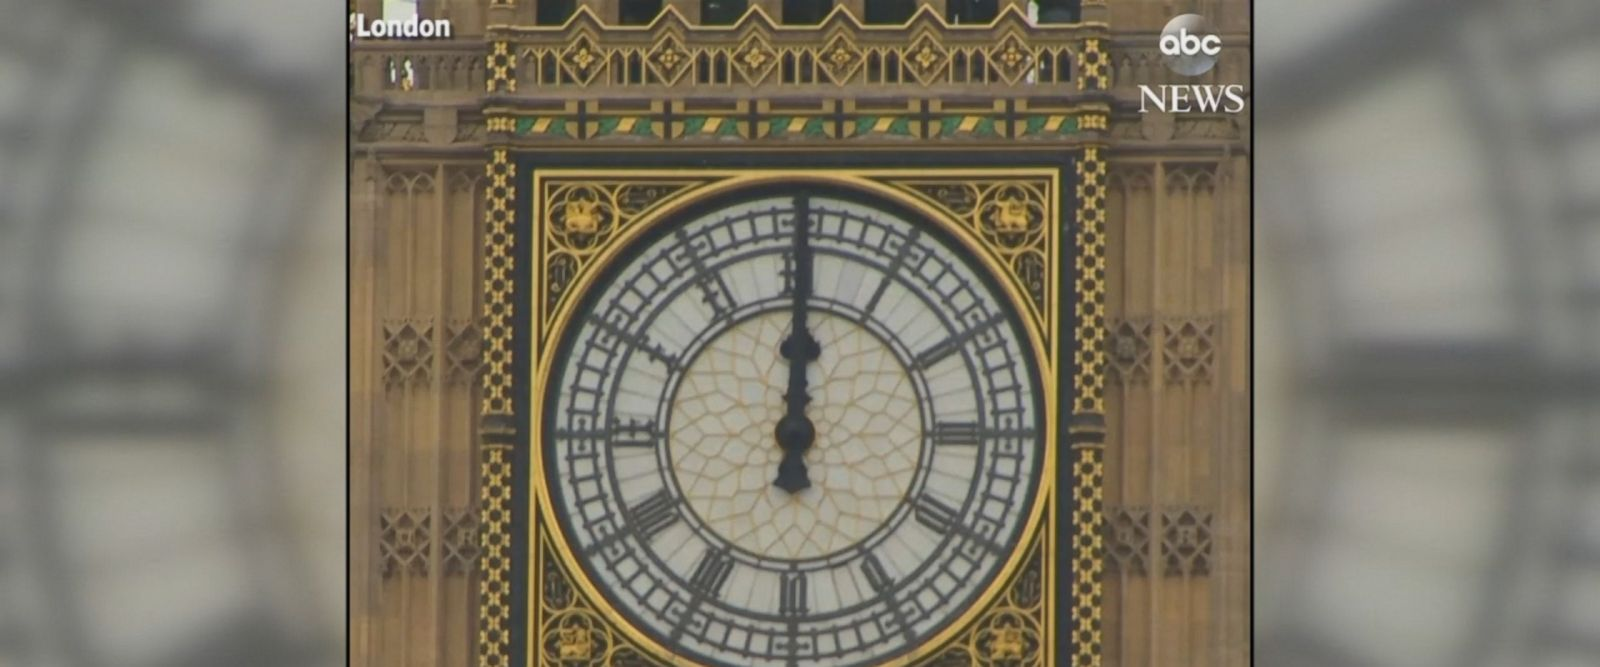 Britain's Big Ben has bonged the hour for the last time ahead of almost four years of repair work.